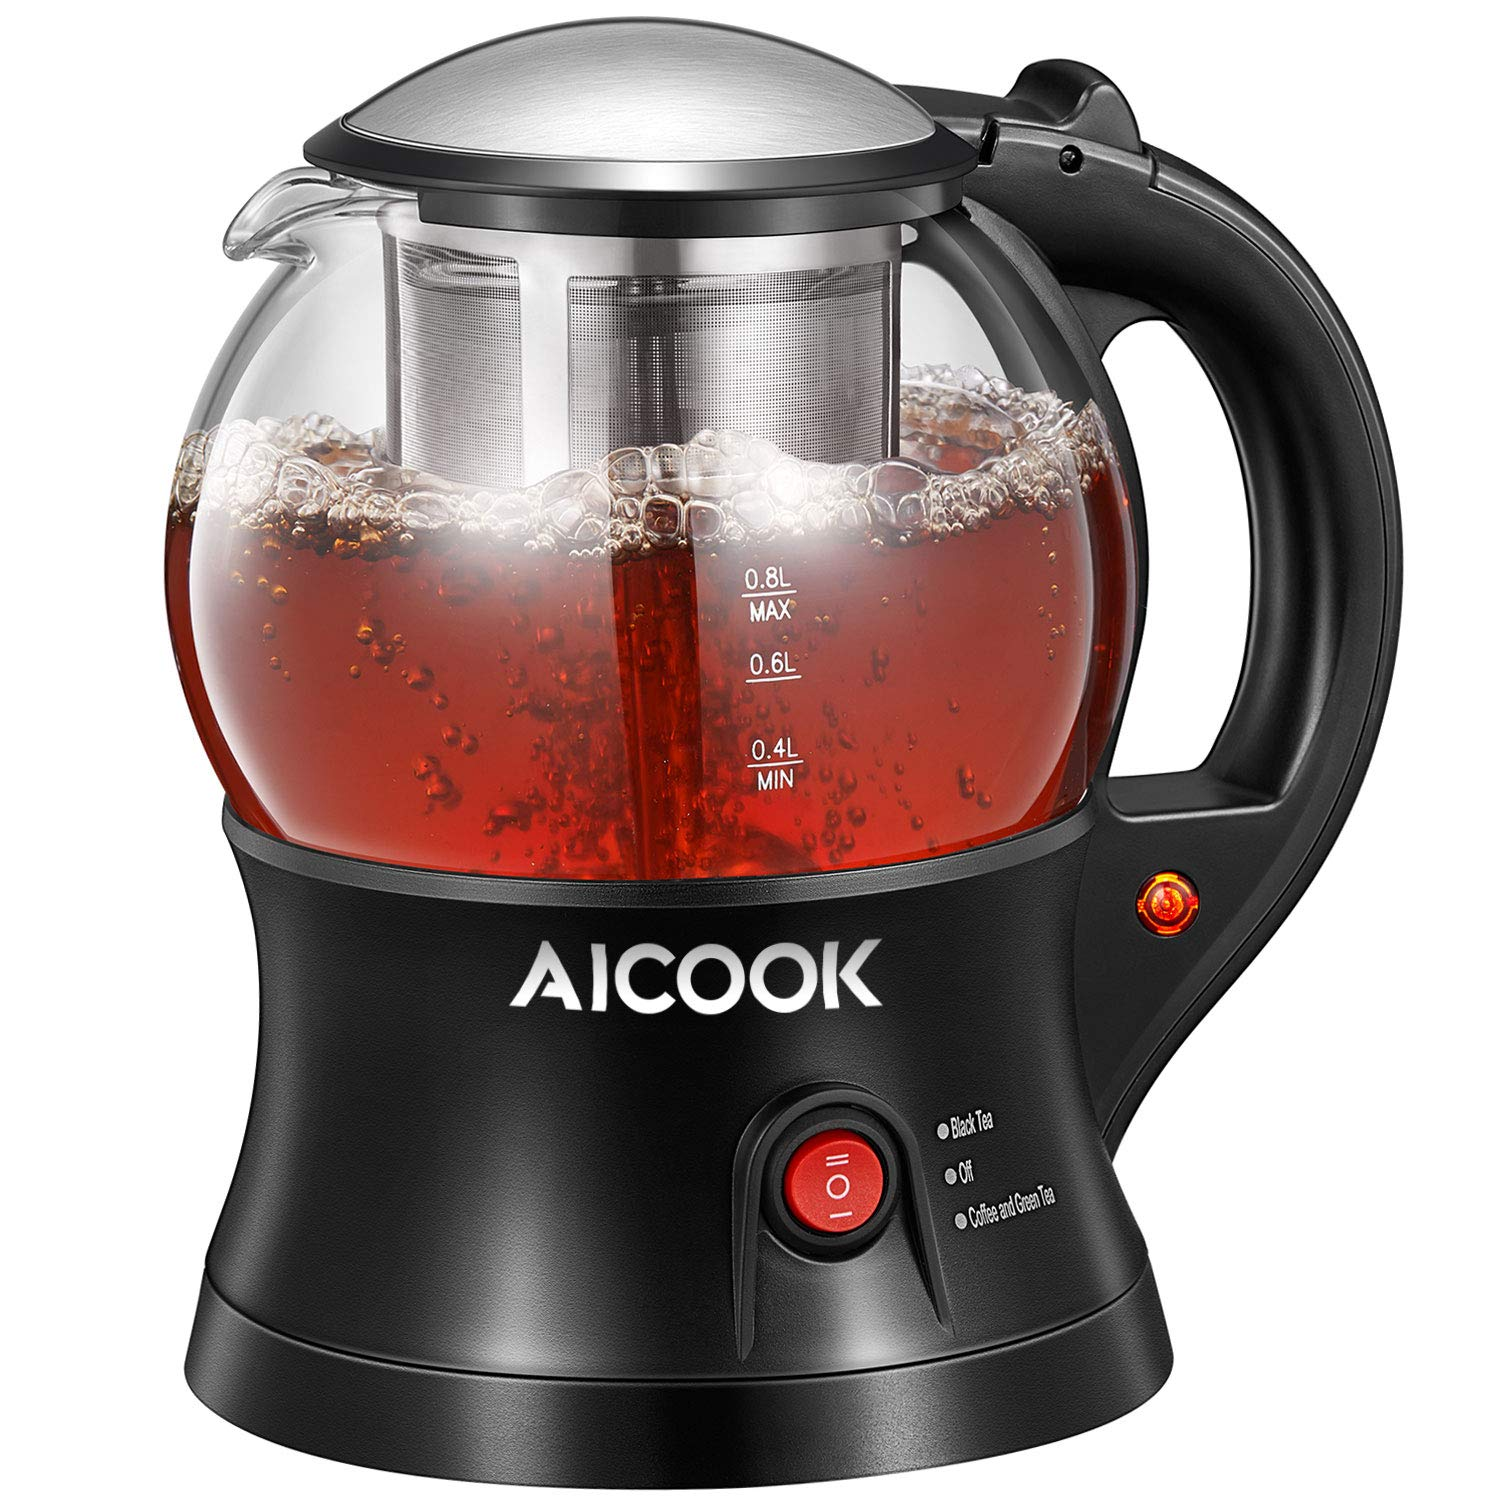 Electric Teapot, AICOOK Cordless Tea Pot Kettle with Removable Tea Infuser Set, Tea Maker For Blooming, Loose Leaf & Tea Bag and Flowering Tea, Keep Warm, Auto Shut-Off and Boil-Dry Protection, BPA Free by AICOOK (Image #1)